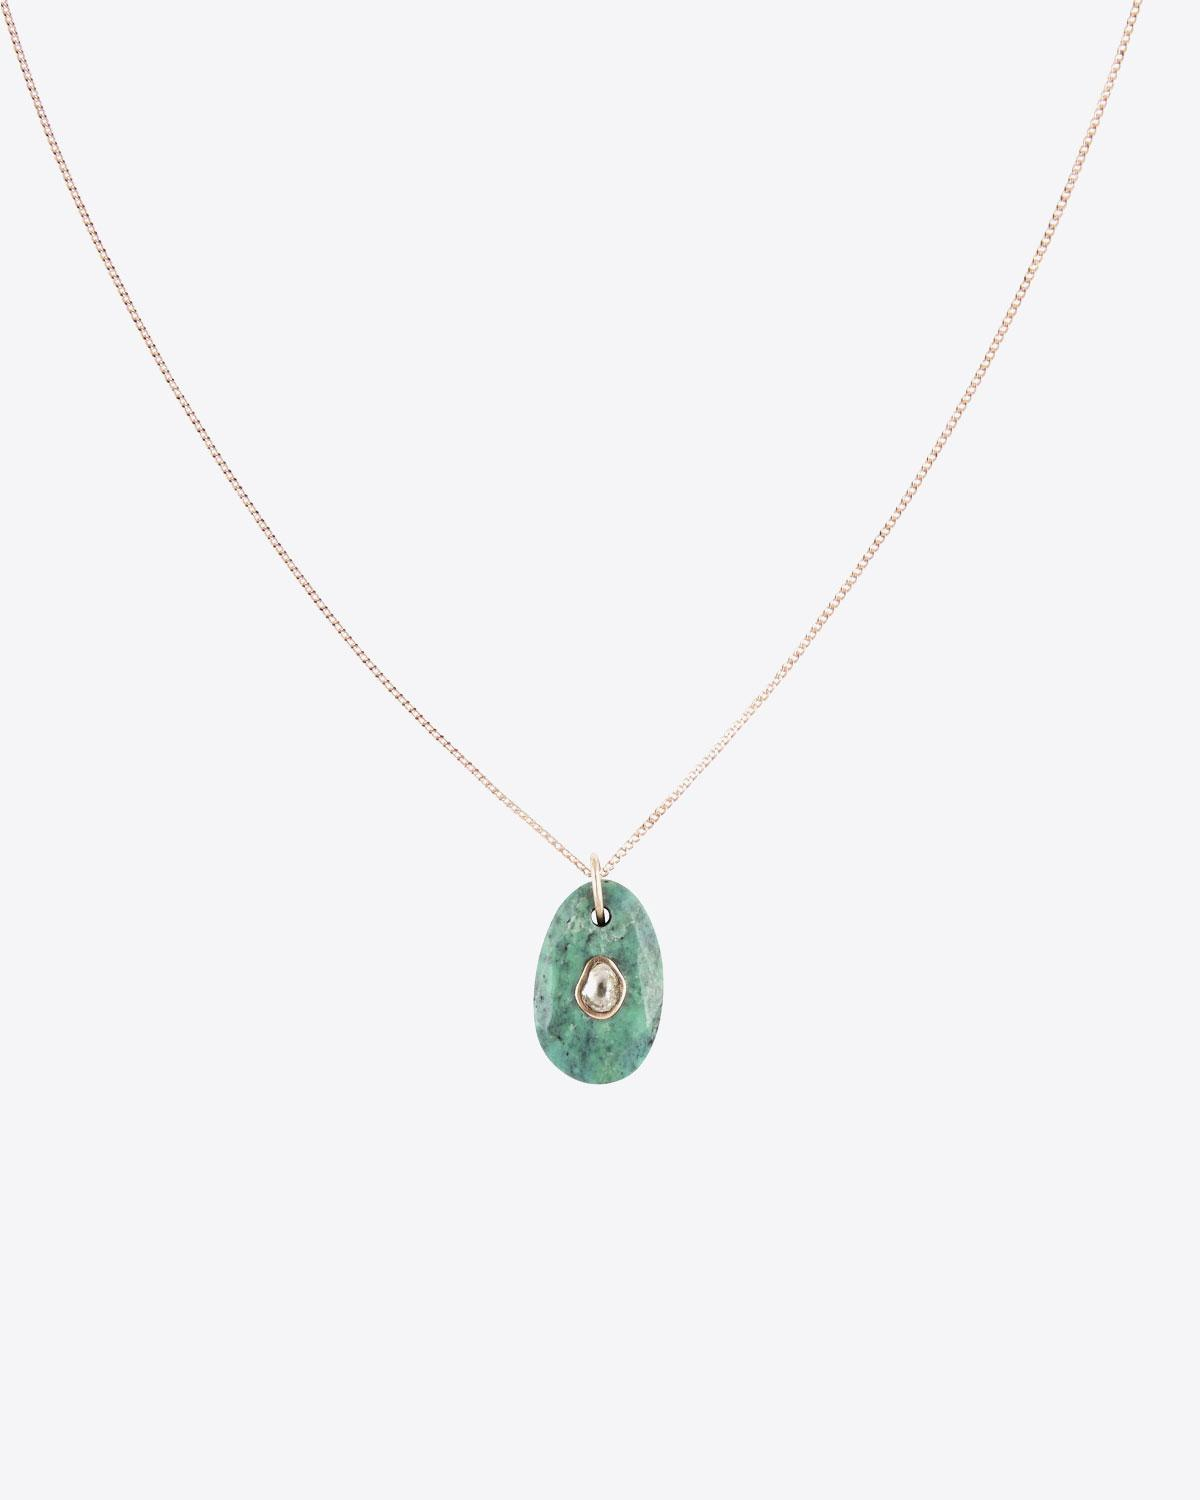 Pascale Monvoisin Orso N°1 Collier Turquoise